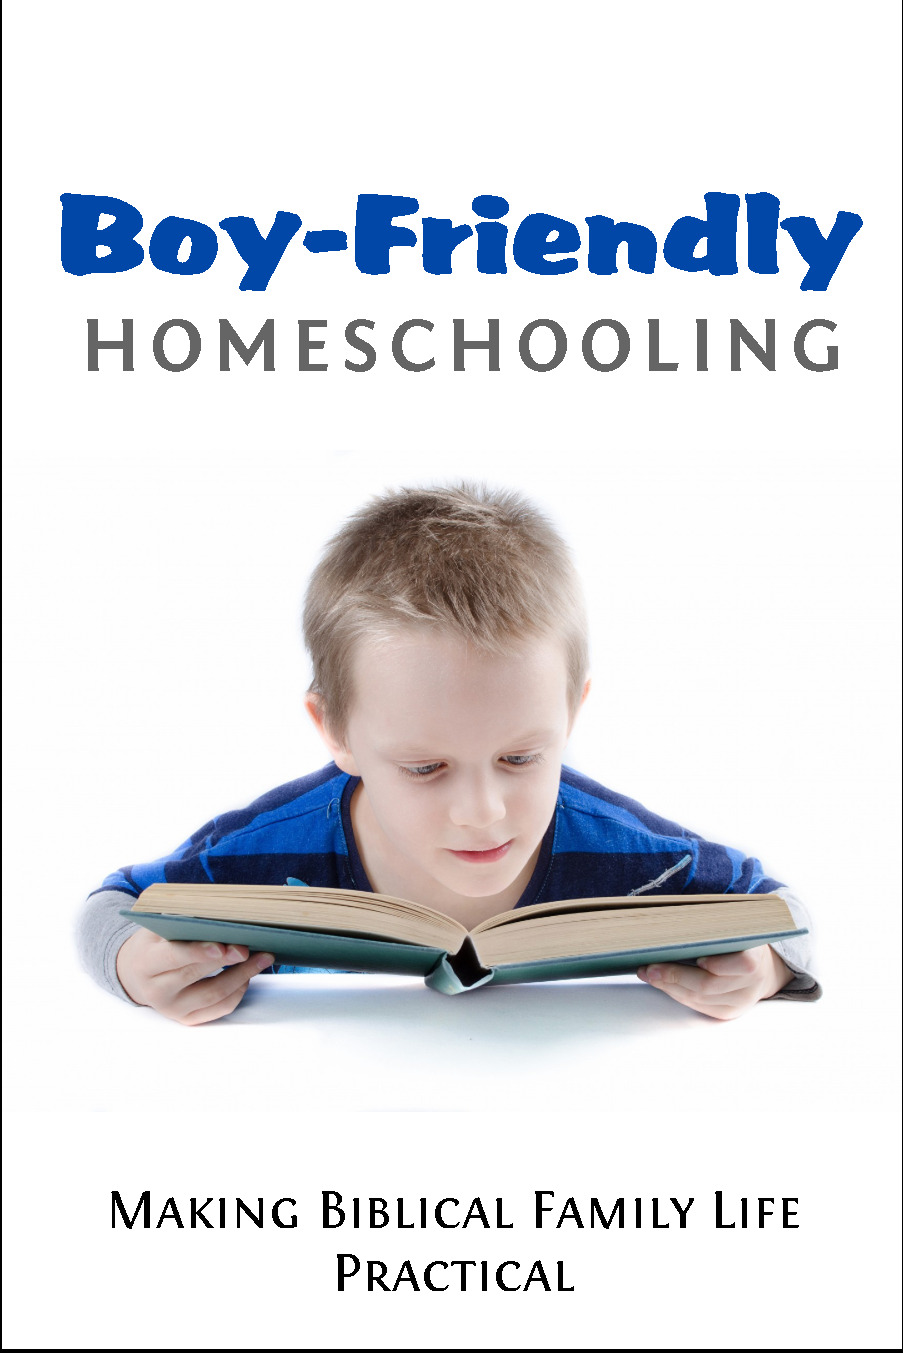 Boy-friendly homeschooling